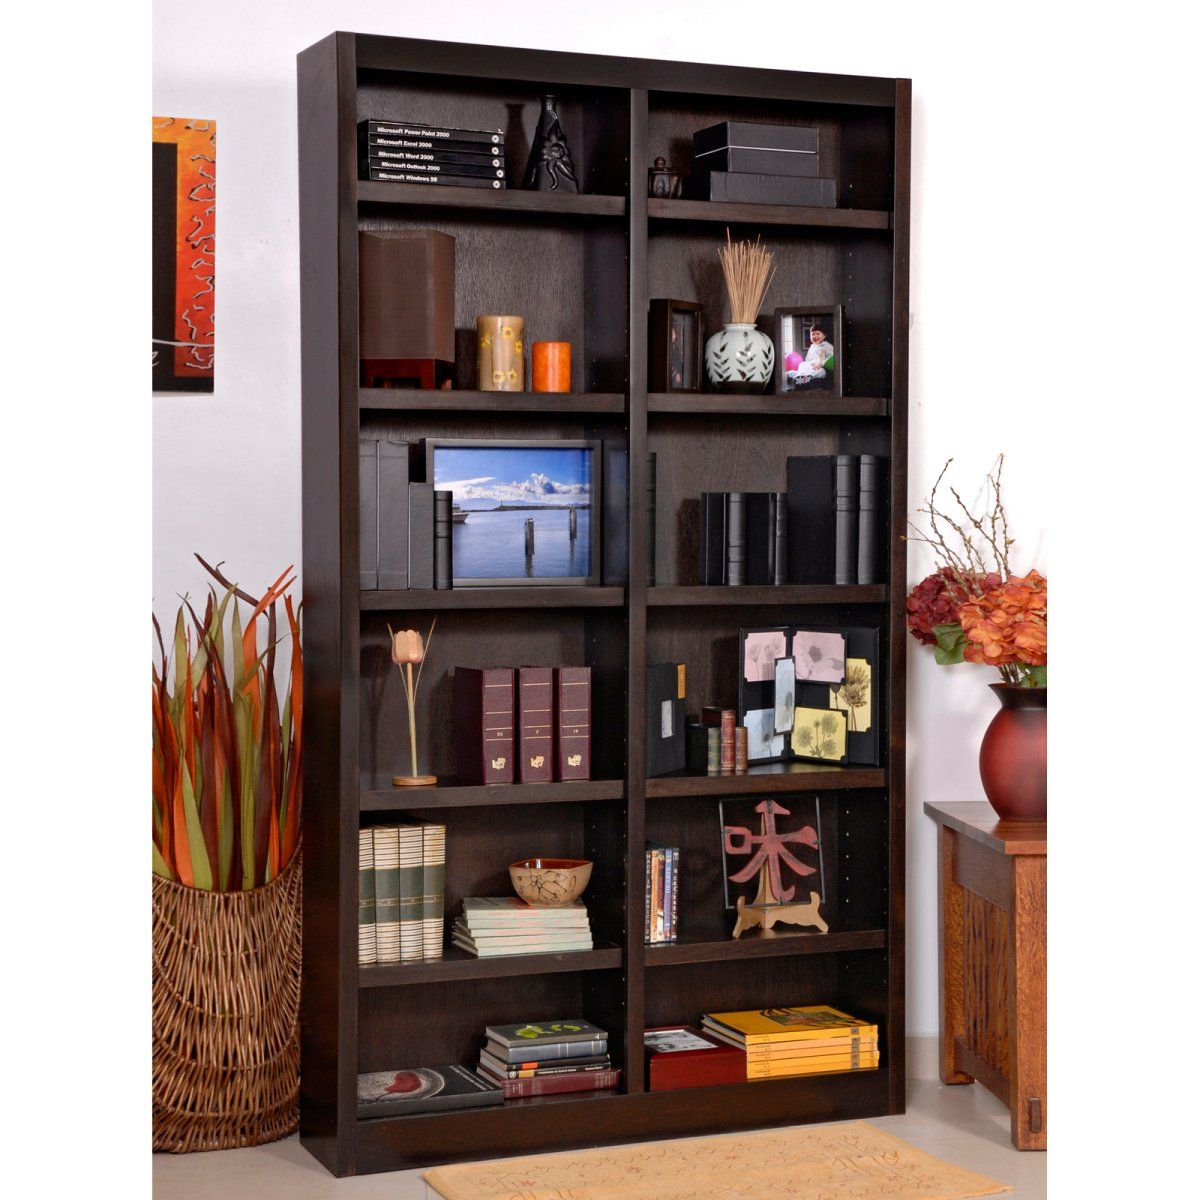 espresso depot the bookcase bookcases furinno open shelf jaya home p